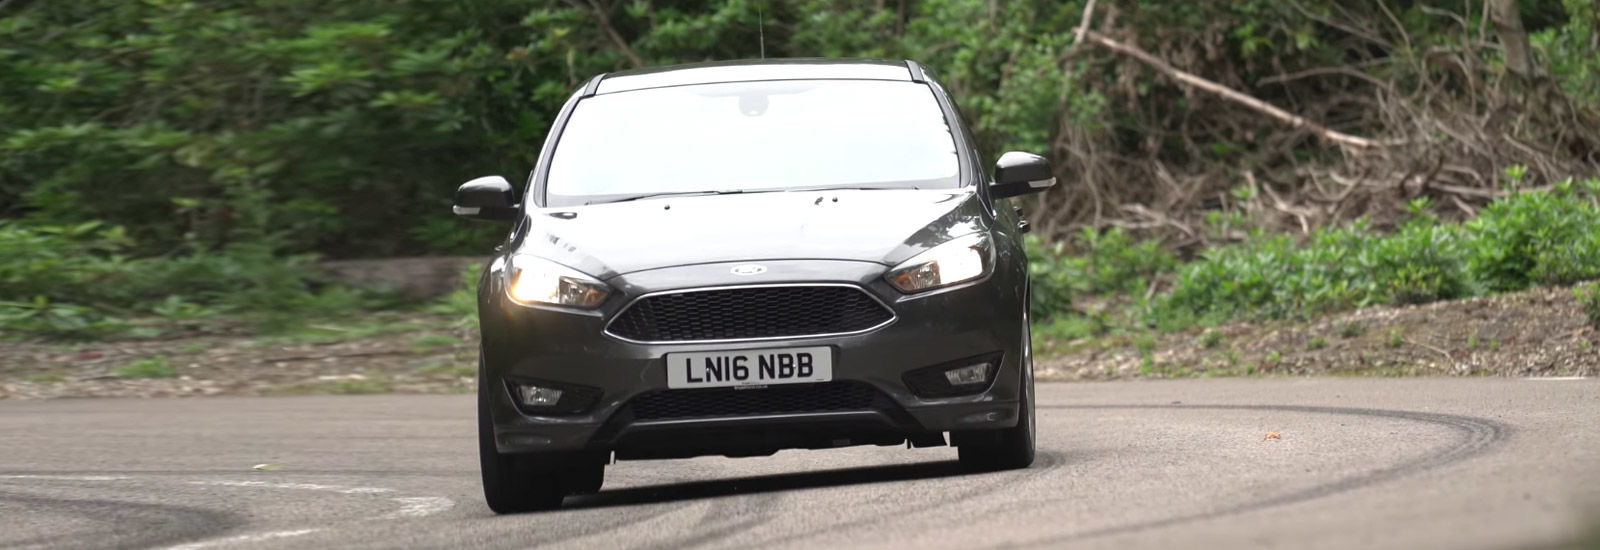 VW Golf vs Ford Focus vs Vauxhall Astra video group test  carwow